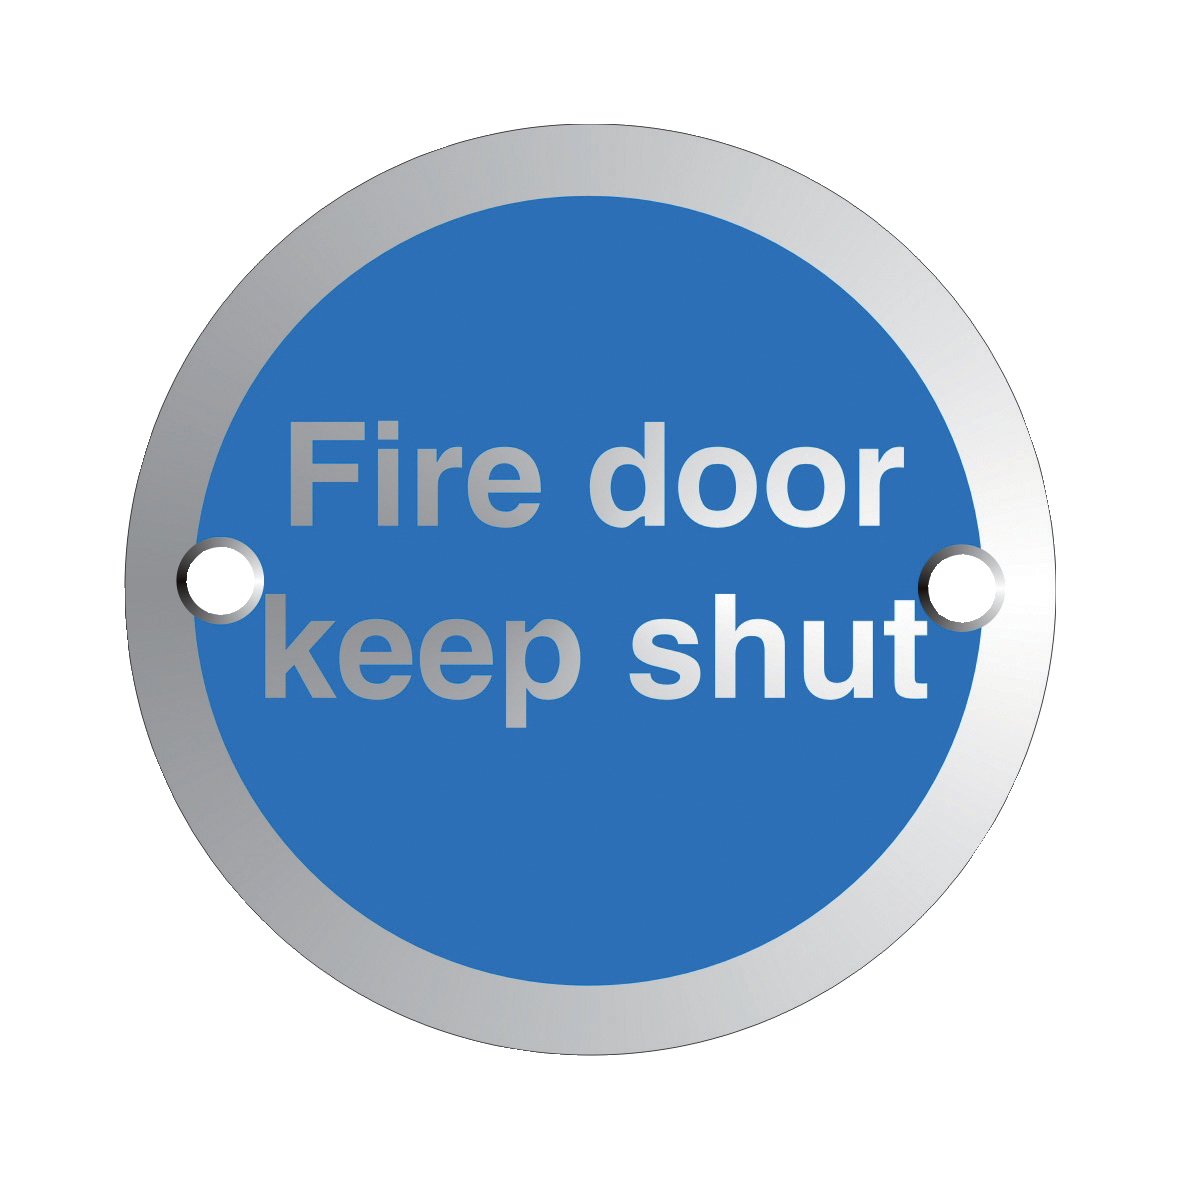 Stewart Superior Circular Fire Door Keep Shut Sign Satin Anodised Alu 72mmDia Self-adhesive Ref SAA005